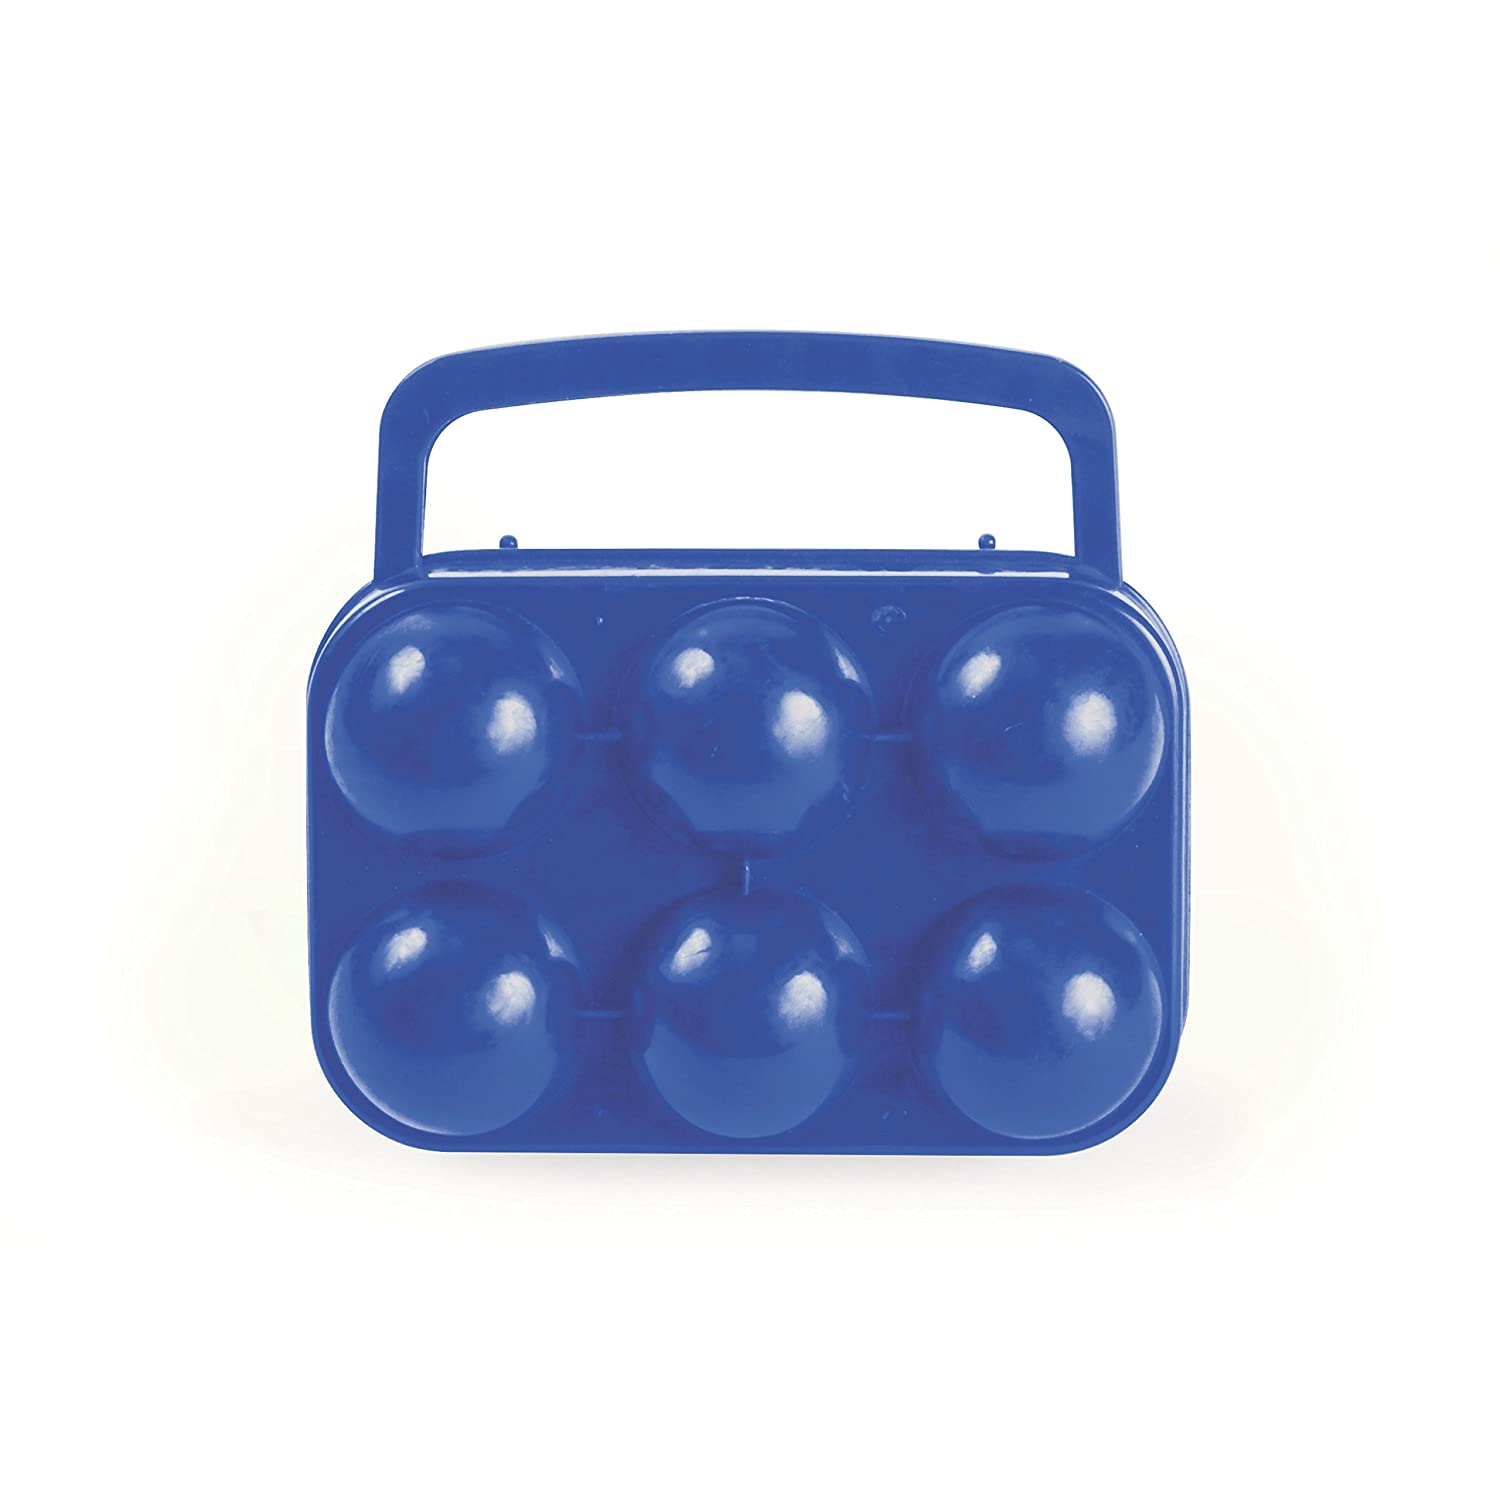 Camco 51015 12-Egg Carrier